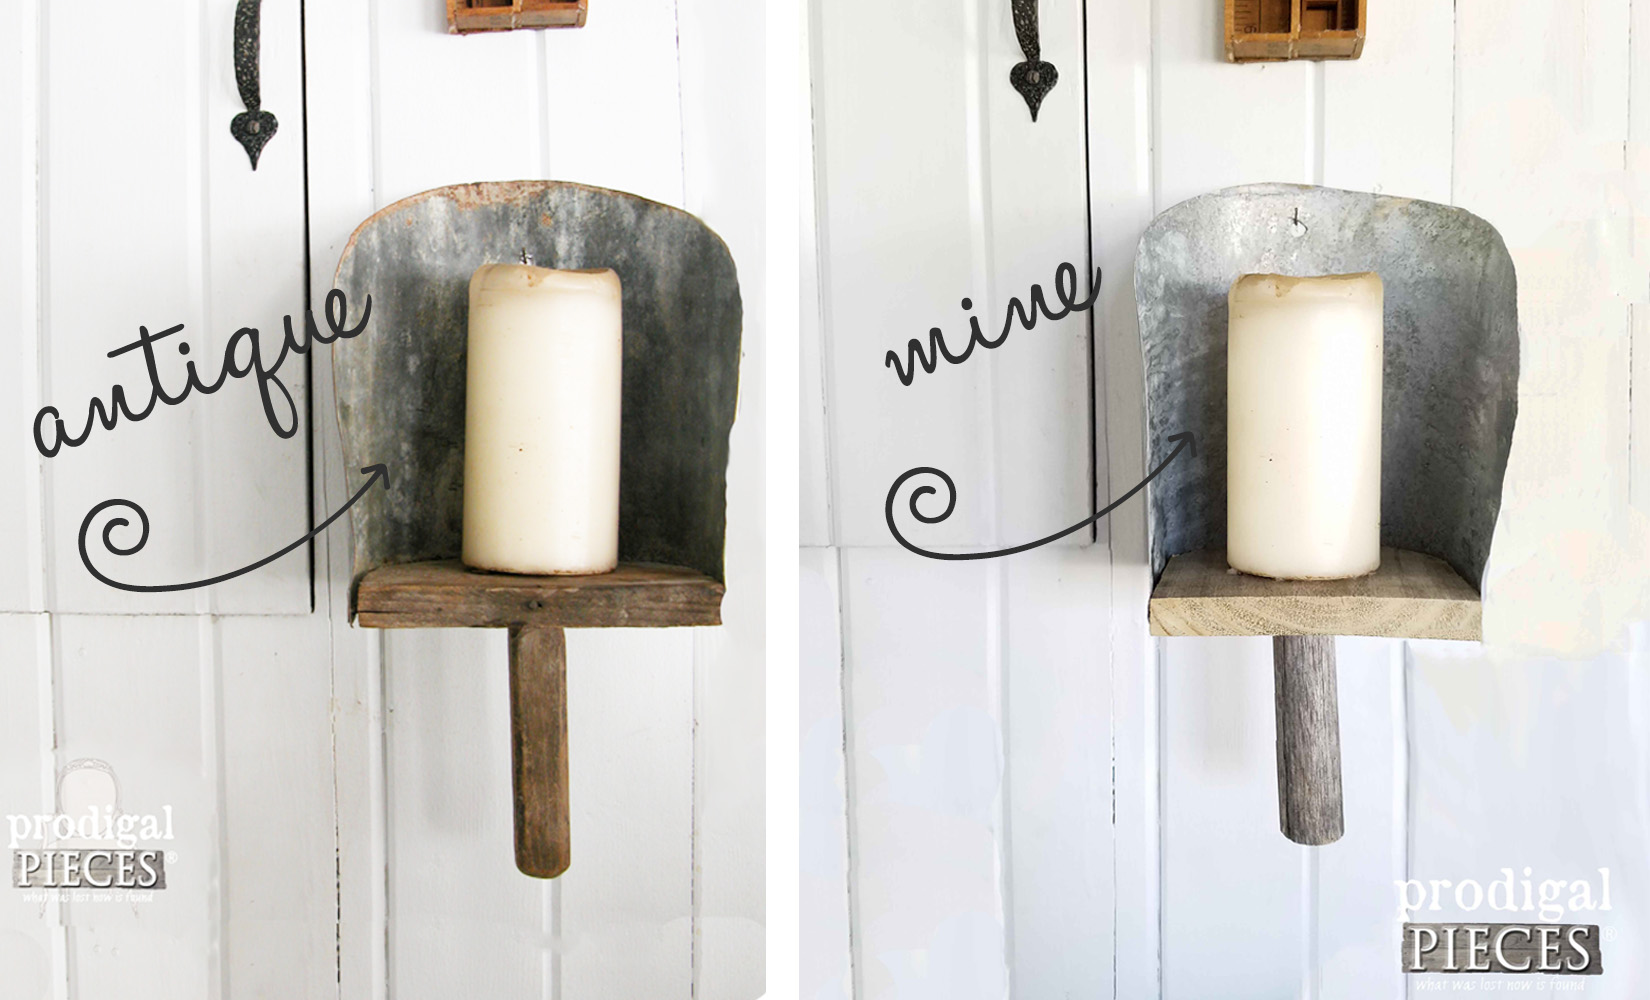 DIY Grain Scoop Sconce Comparison | Prodigal Pieces | prodigalpieces.com